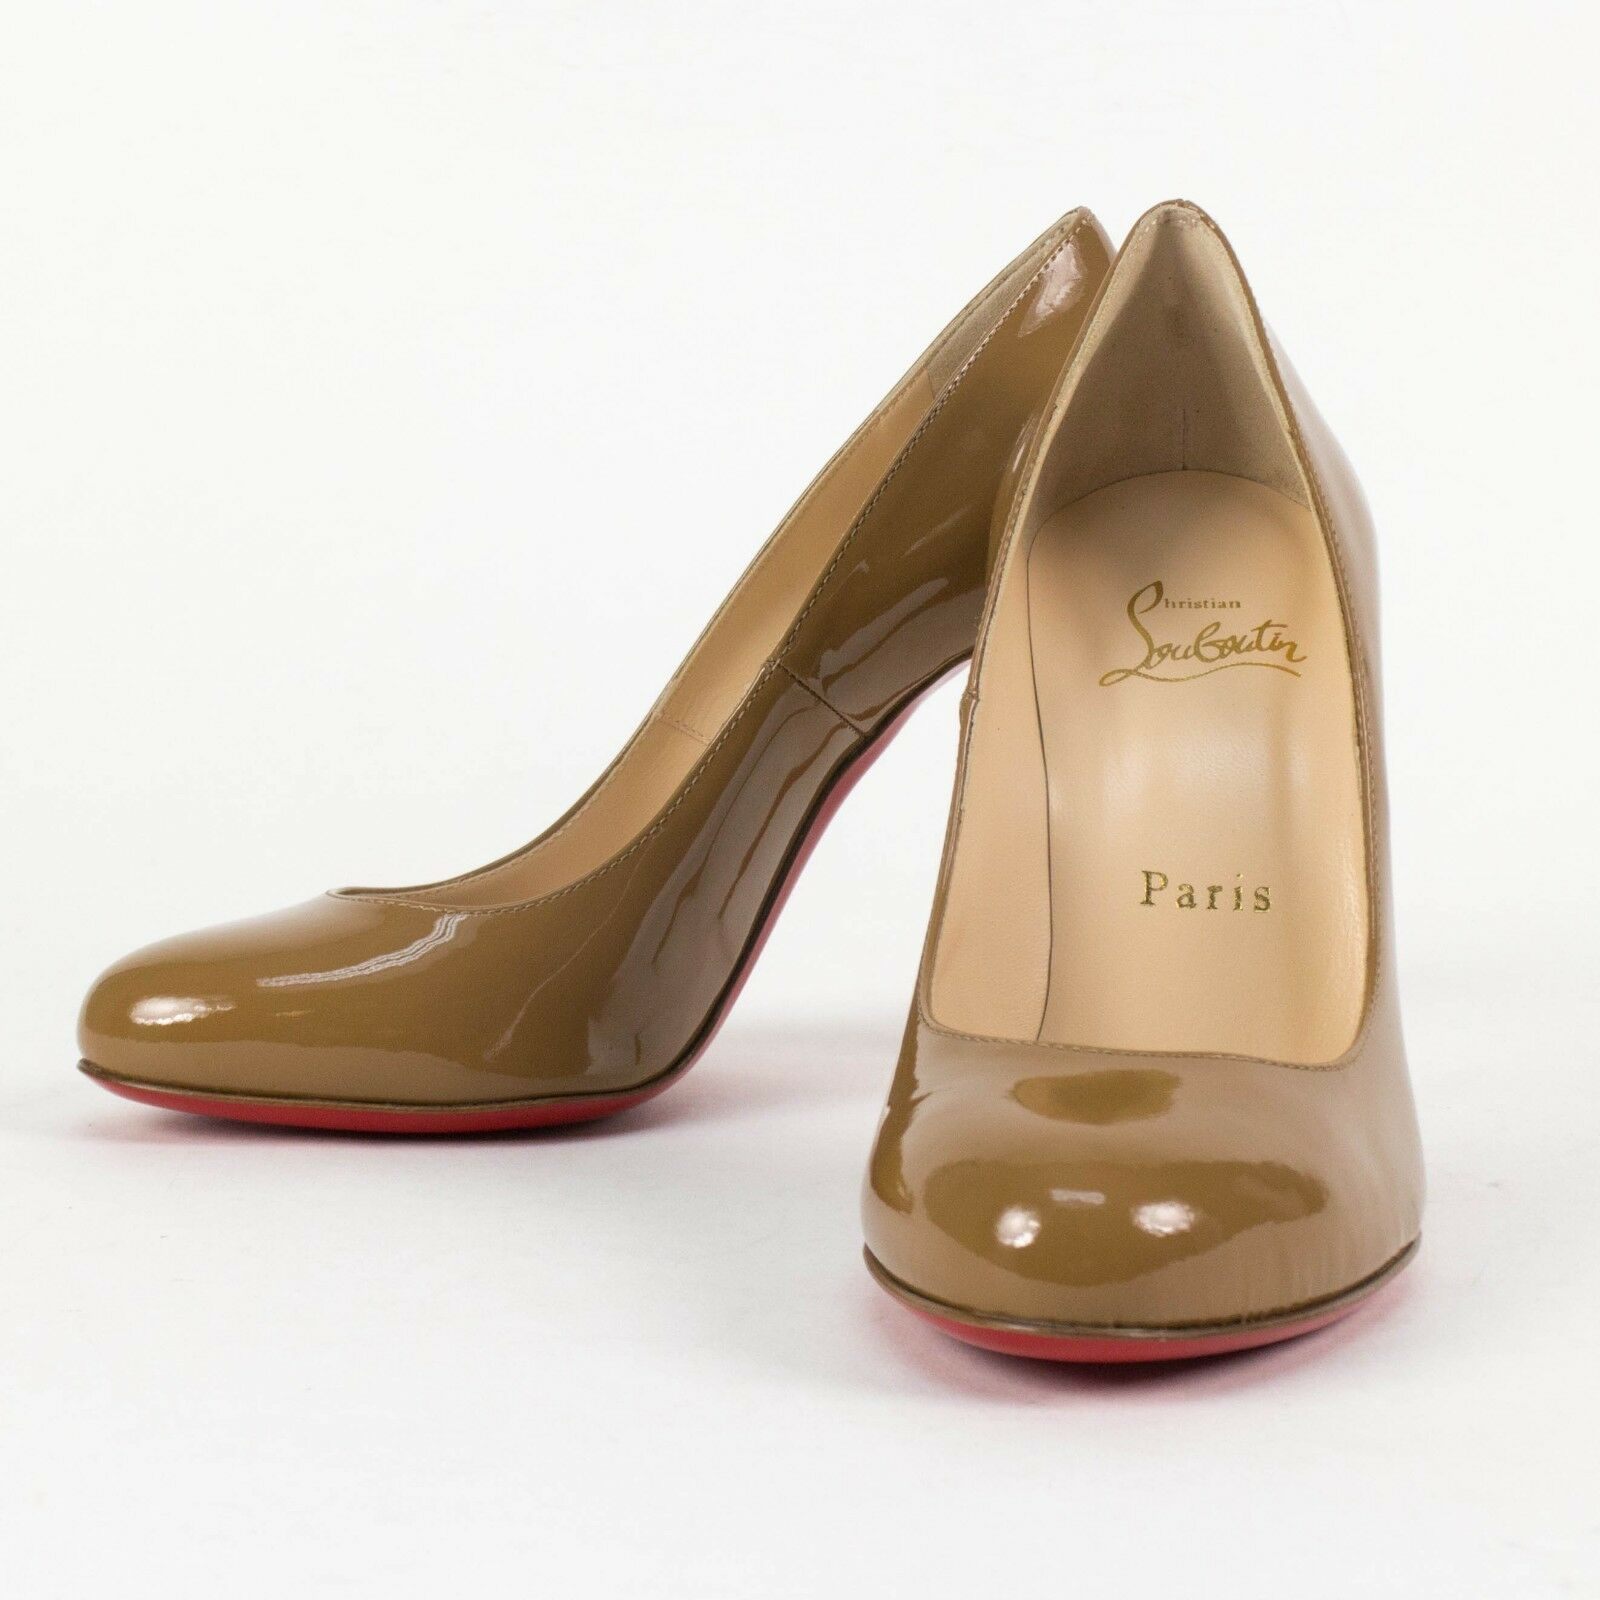 New CHRISTIAN LOUBOUTIN 'FIFI' Cool Beige Patent Leather Pumps Size 8 38